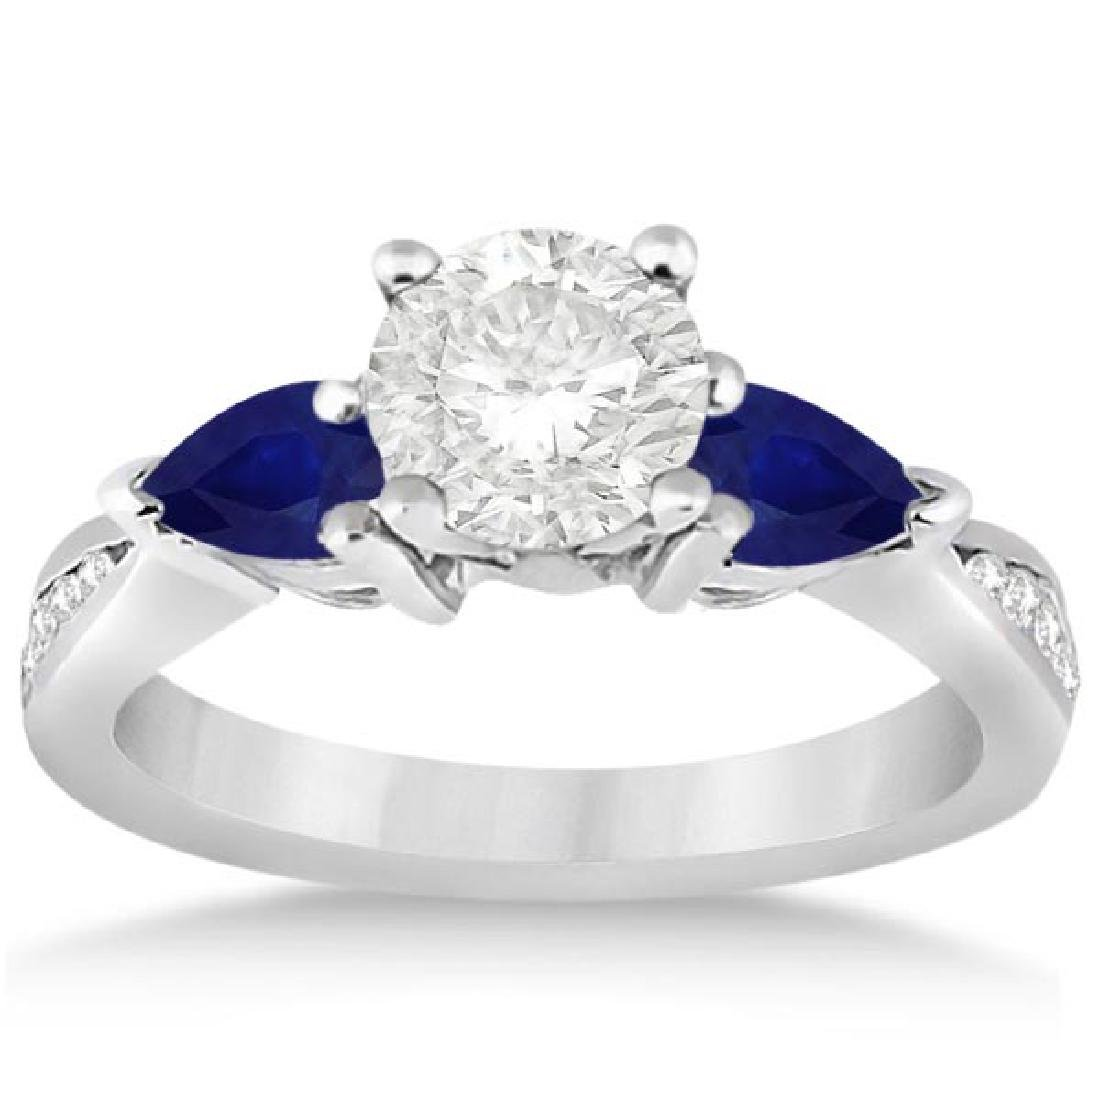 Diamond and Pear Blue Sapphire Engagement Ring 14k Whit